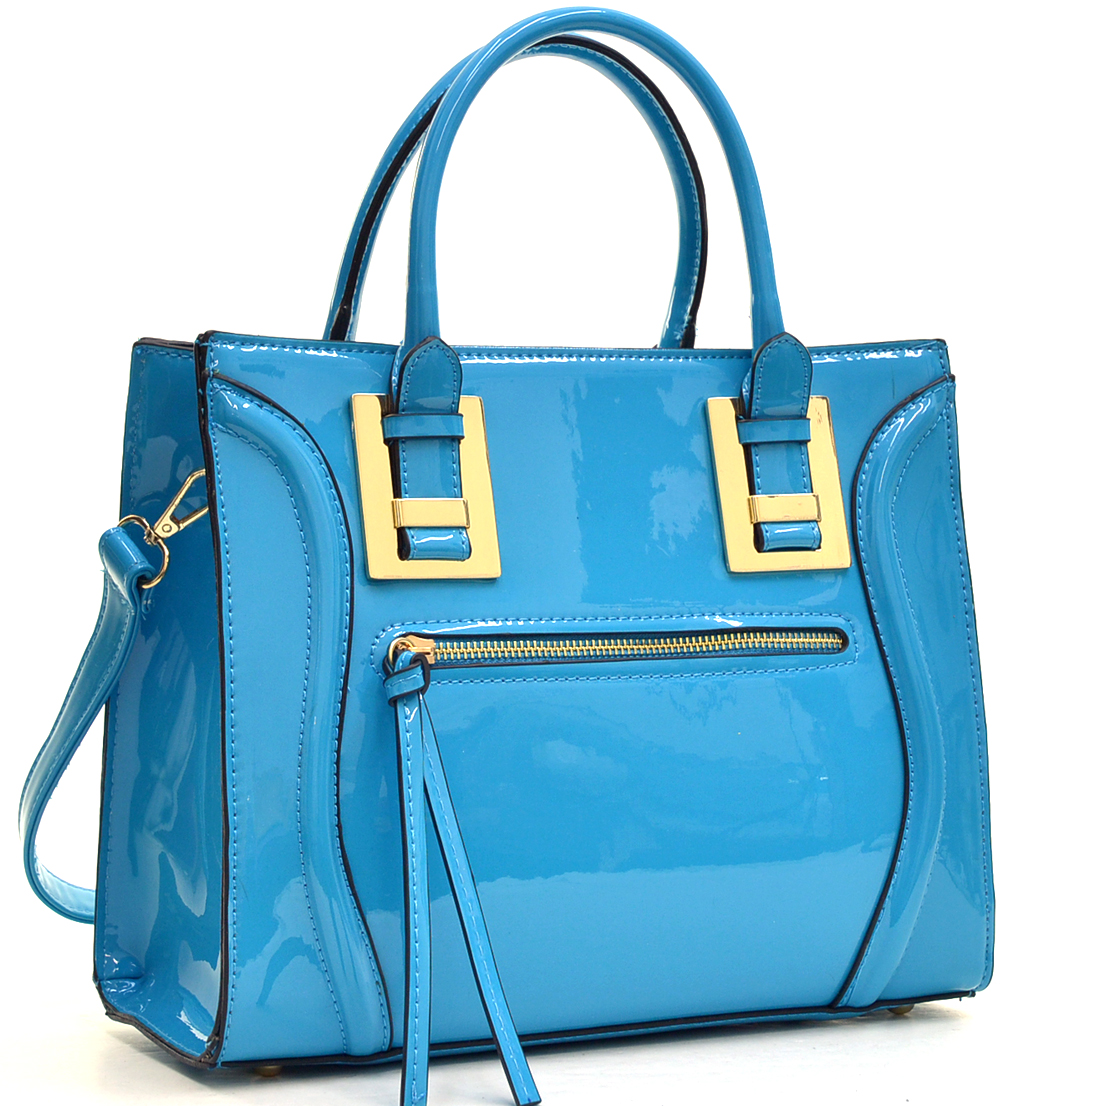 Structured Patent Faux Leather Satchel with Zipper Front Pocket